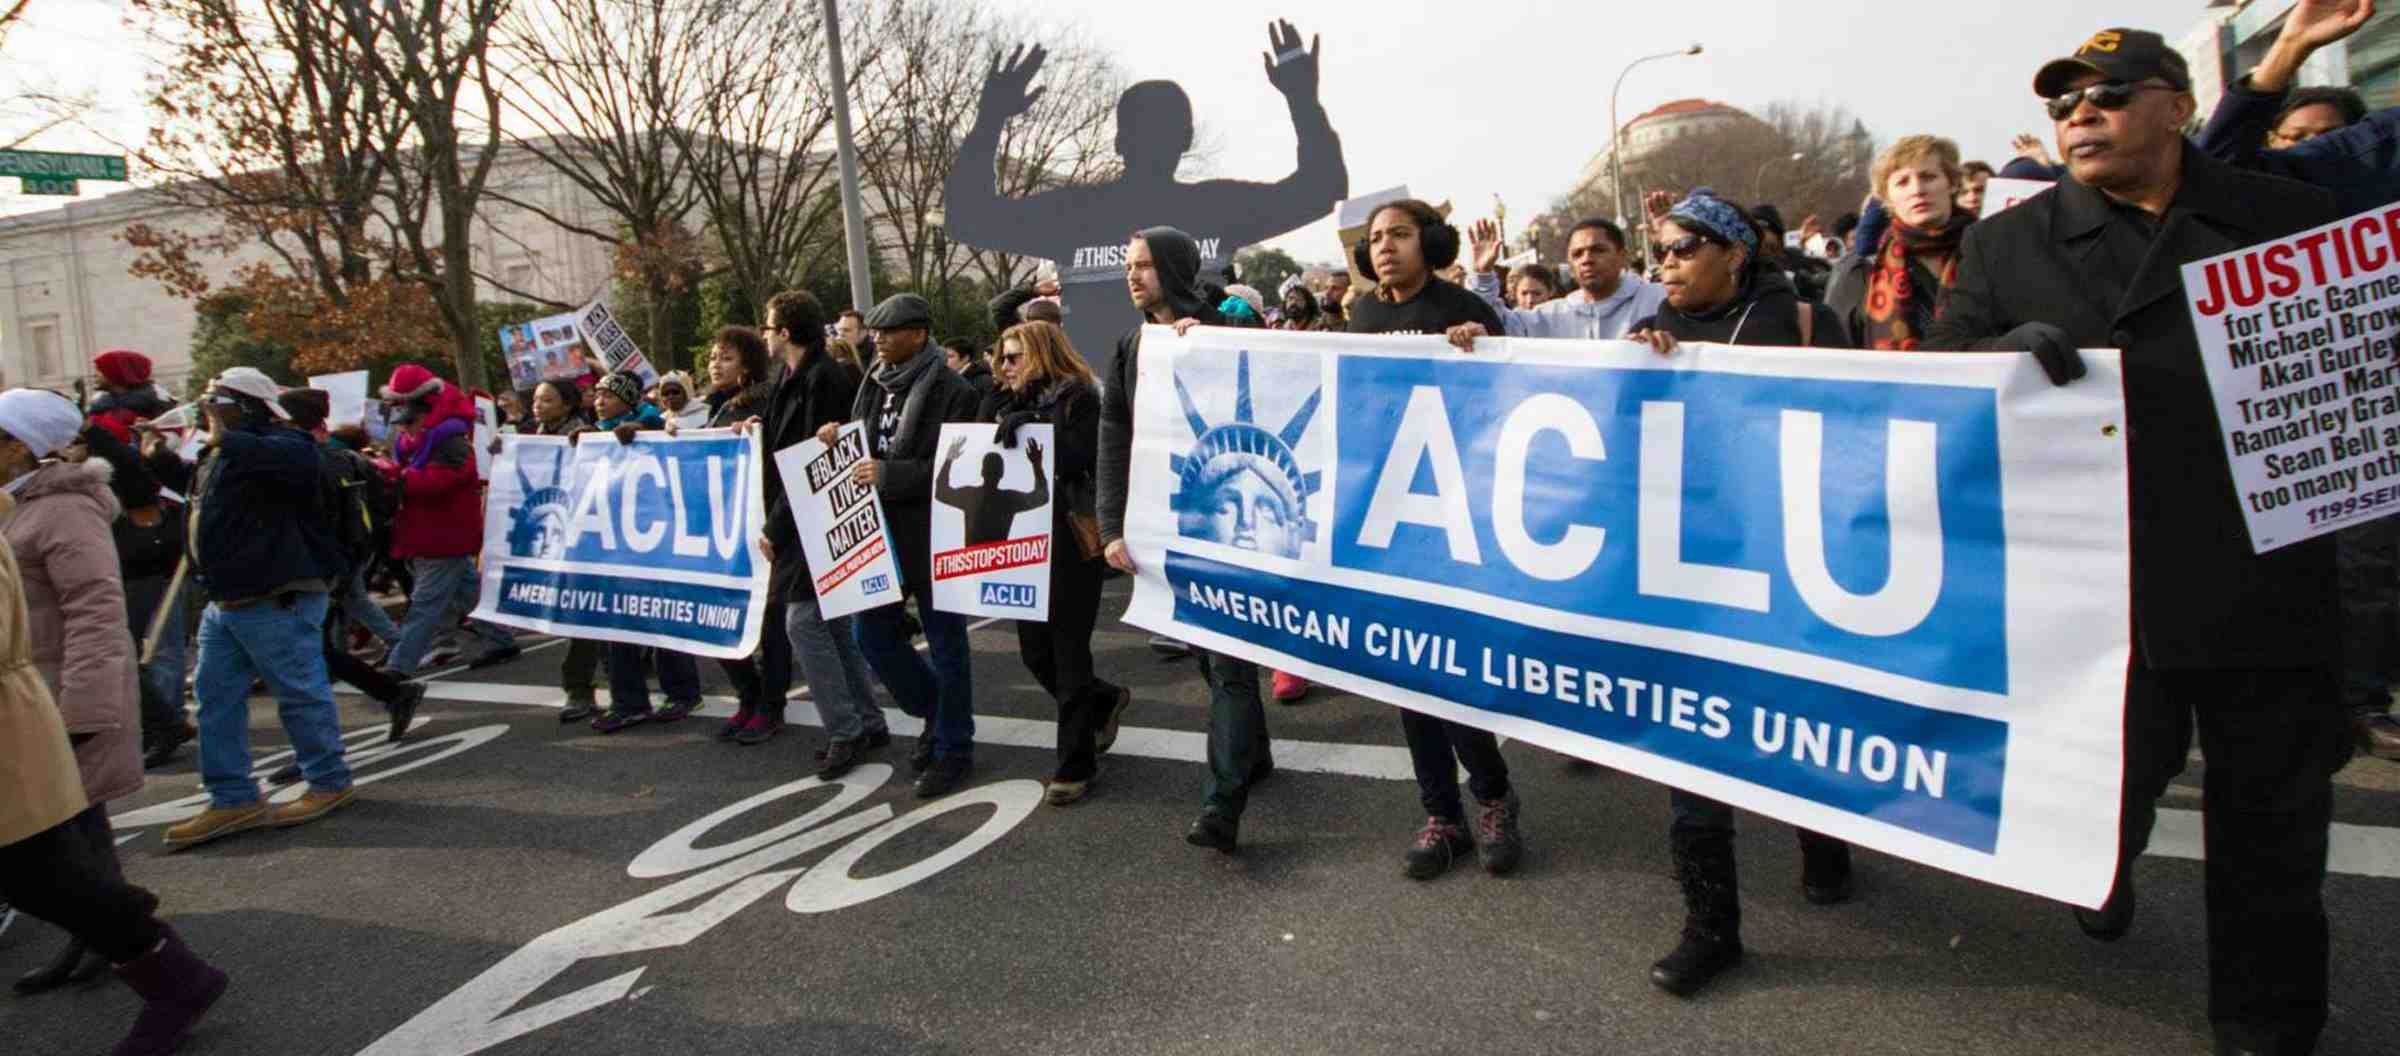 ACLU Obtains Documents Showing Widespread Abuse of Child Immigrants in U.S. Custody | American Civil Liberties Union